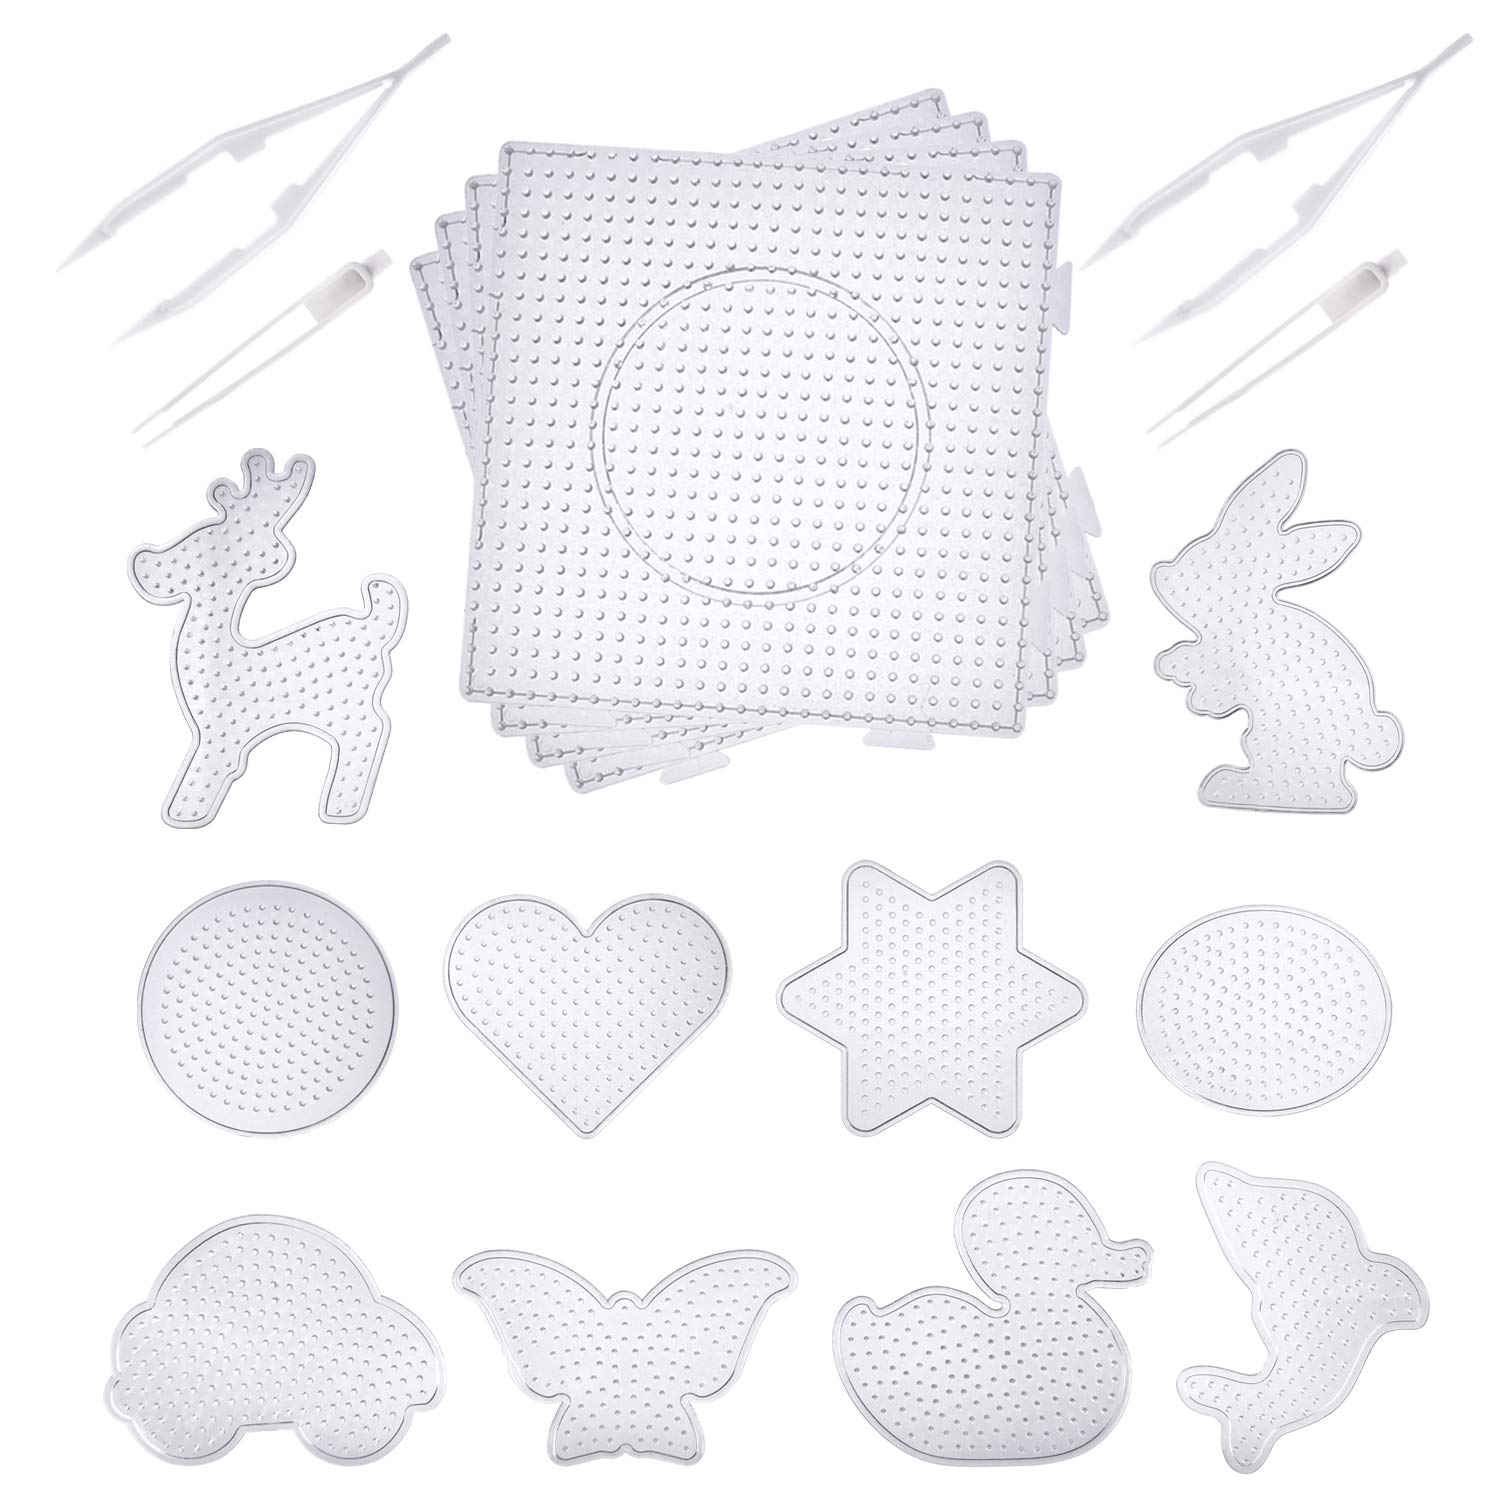 Canomo Fuse Beads Boards 4 Pack 5 mm Large Square Clear Plastic Pegboards 10 Pieces 5 mm Small Cute Fuse Beads Pegboards with 4 Pieces Fuse Bead Tweezers